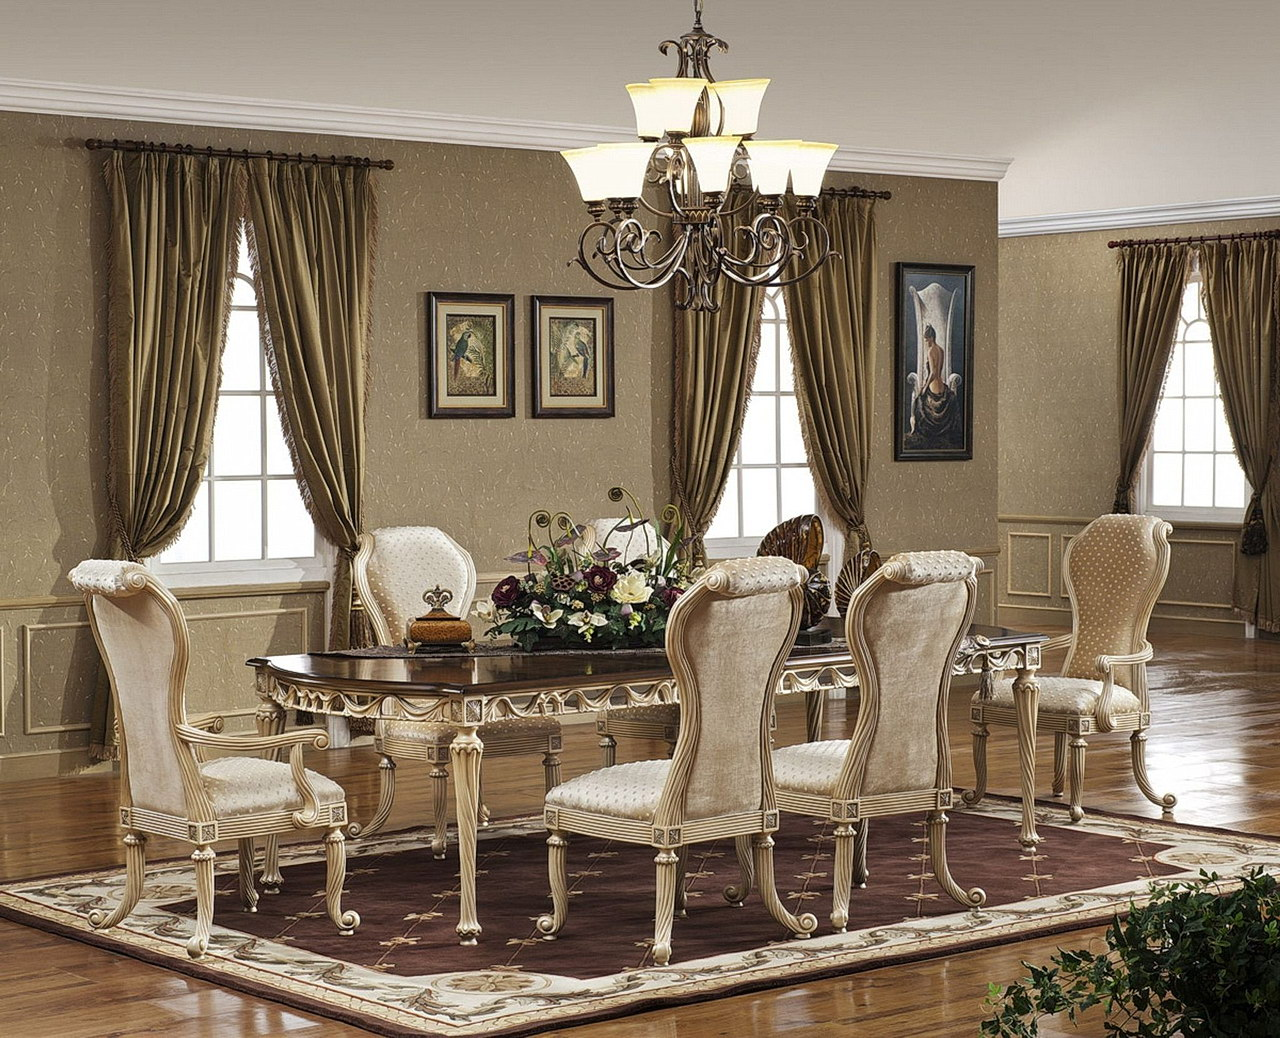 79 handpicked dining room ideas for sweet home interior on dining room inspiration id=21709